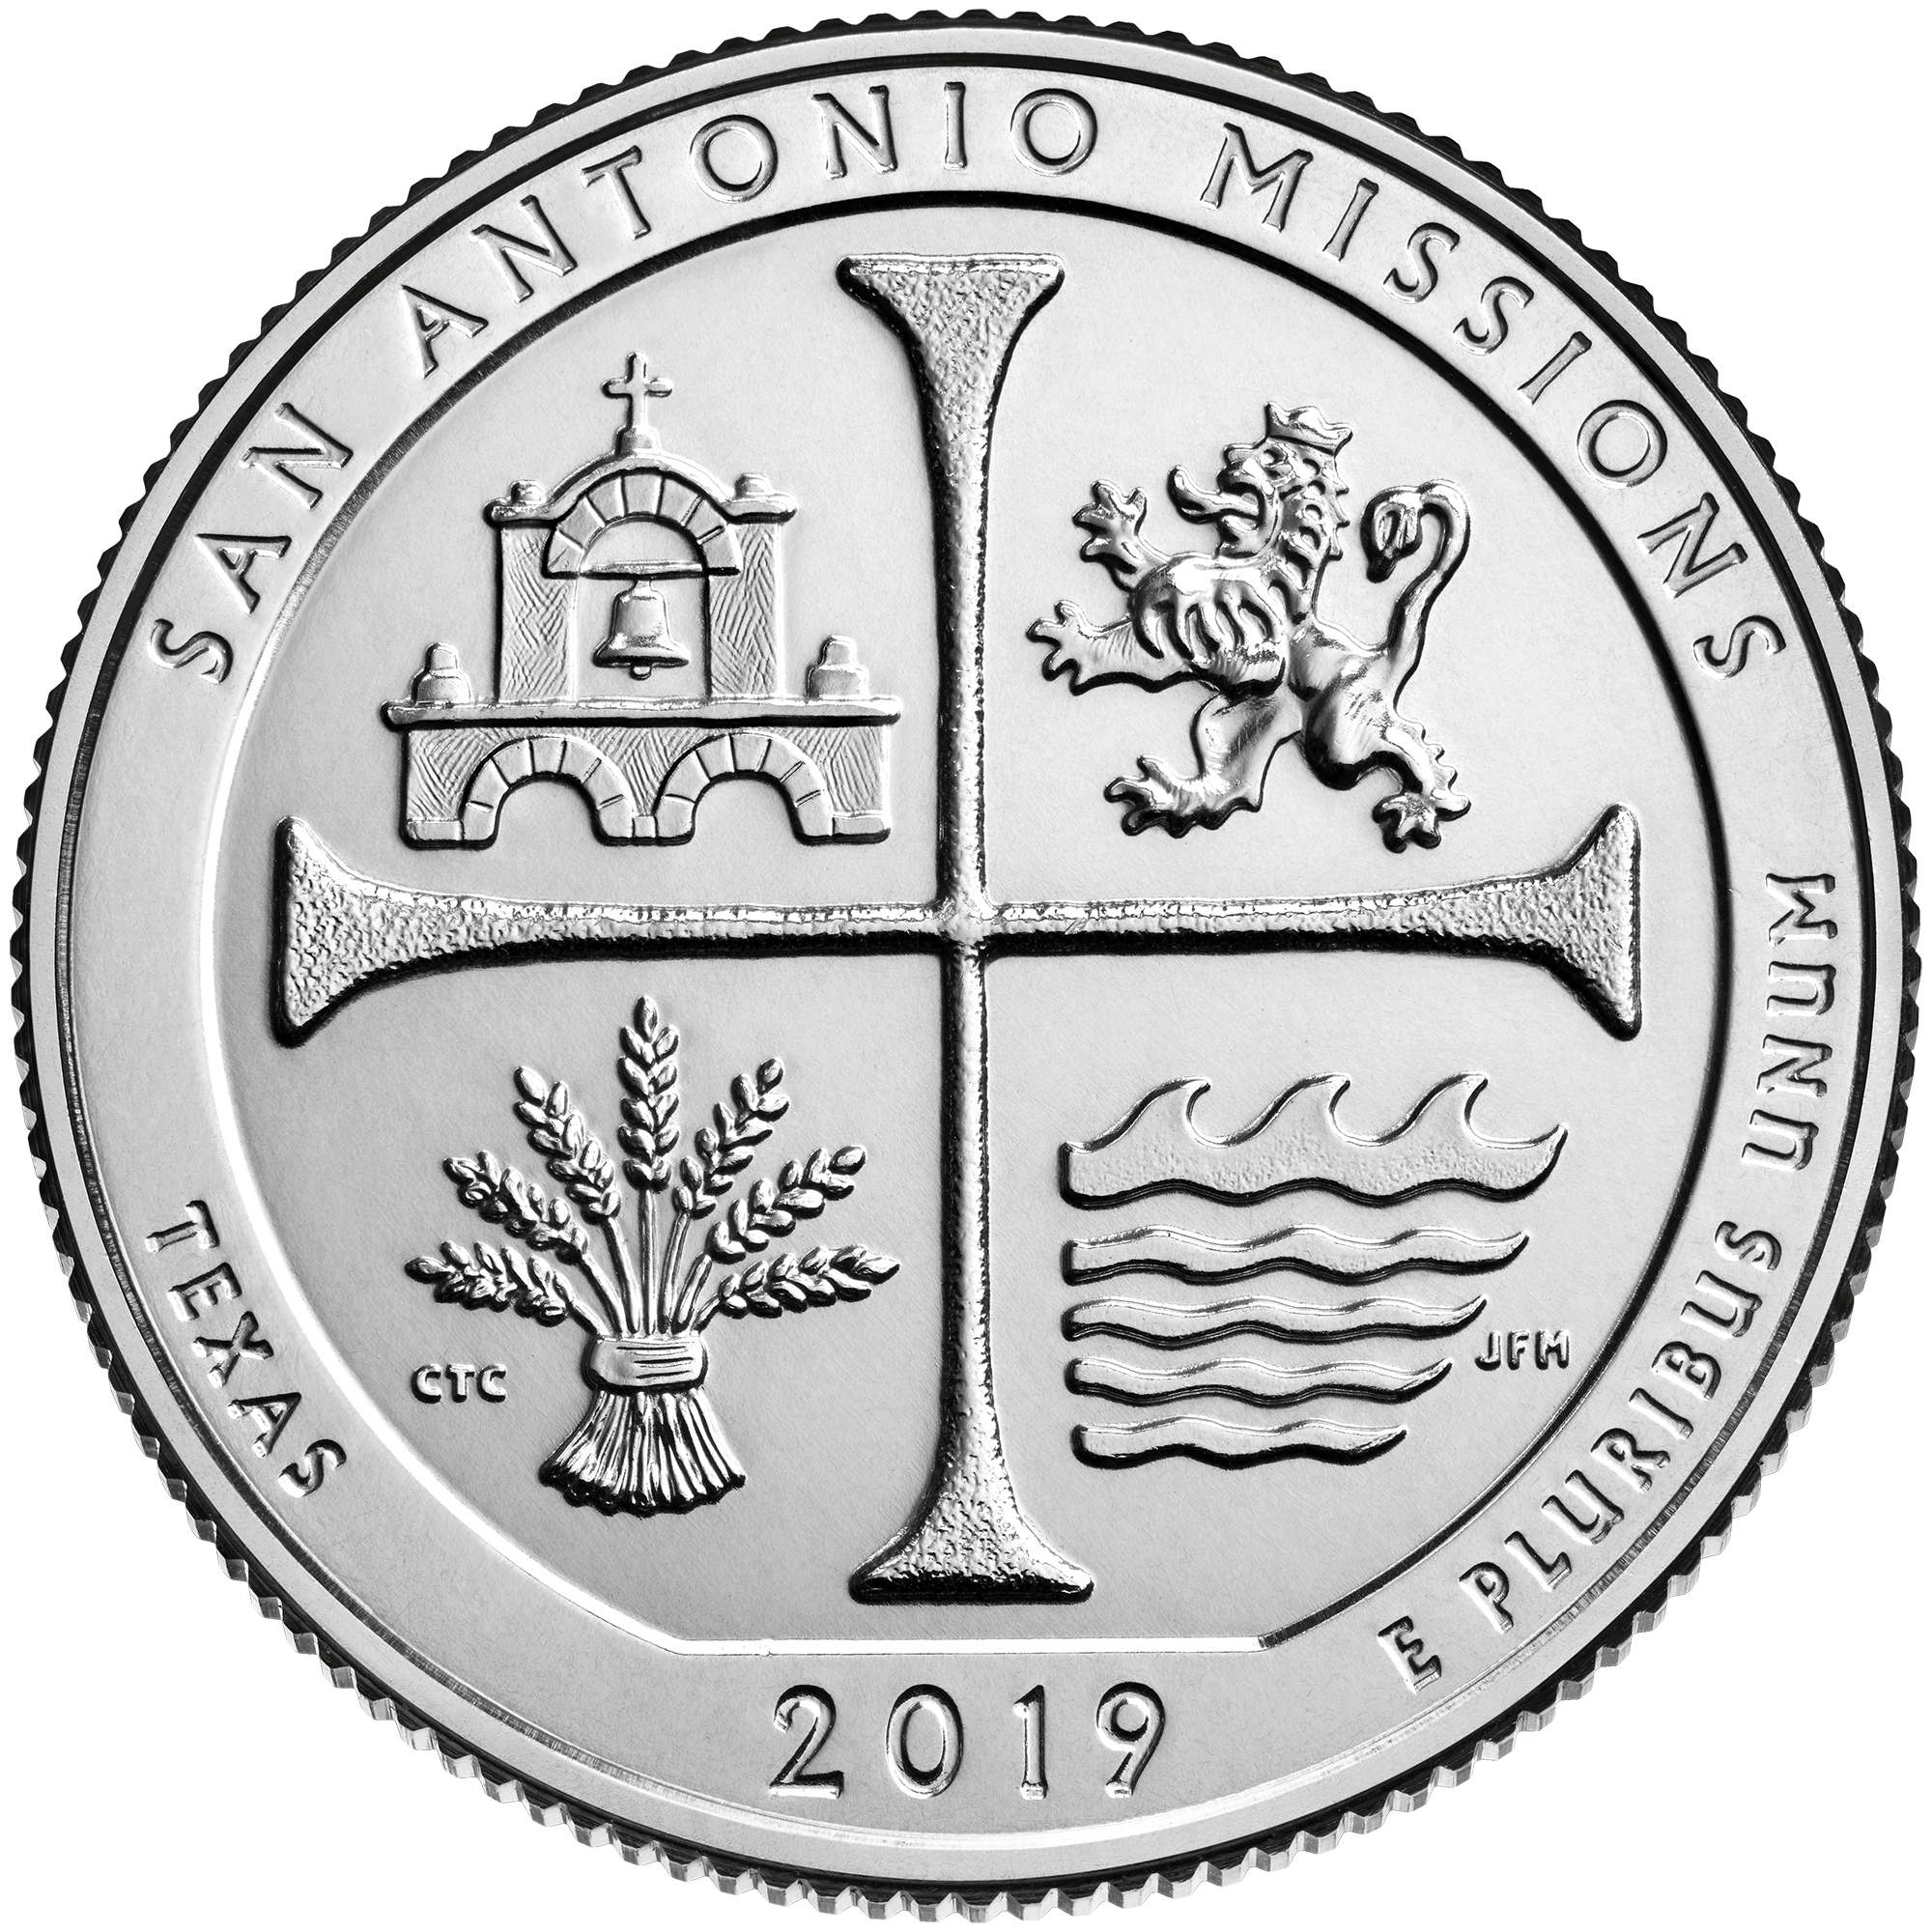 2019 America the Beautiful Quarters Coin San Antonio Missions Texas Uncirculated Reverse